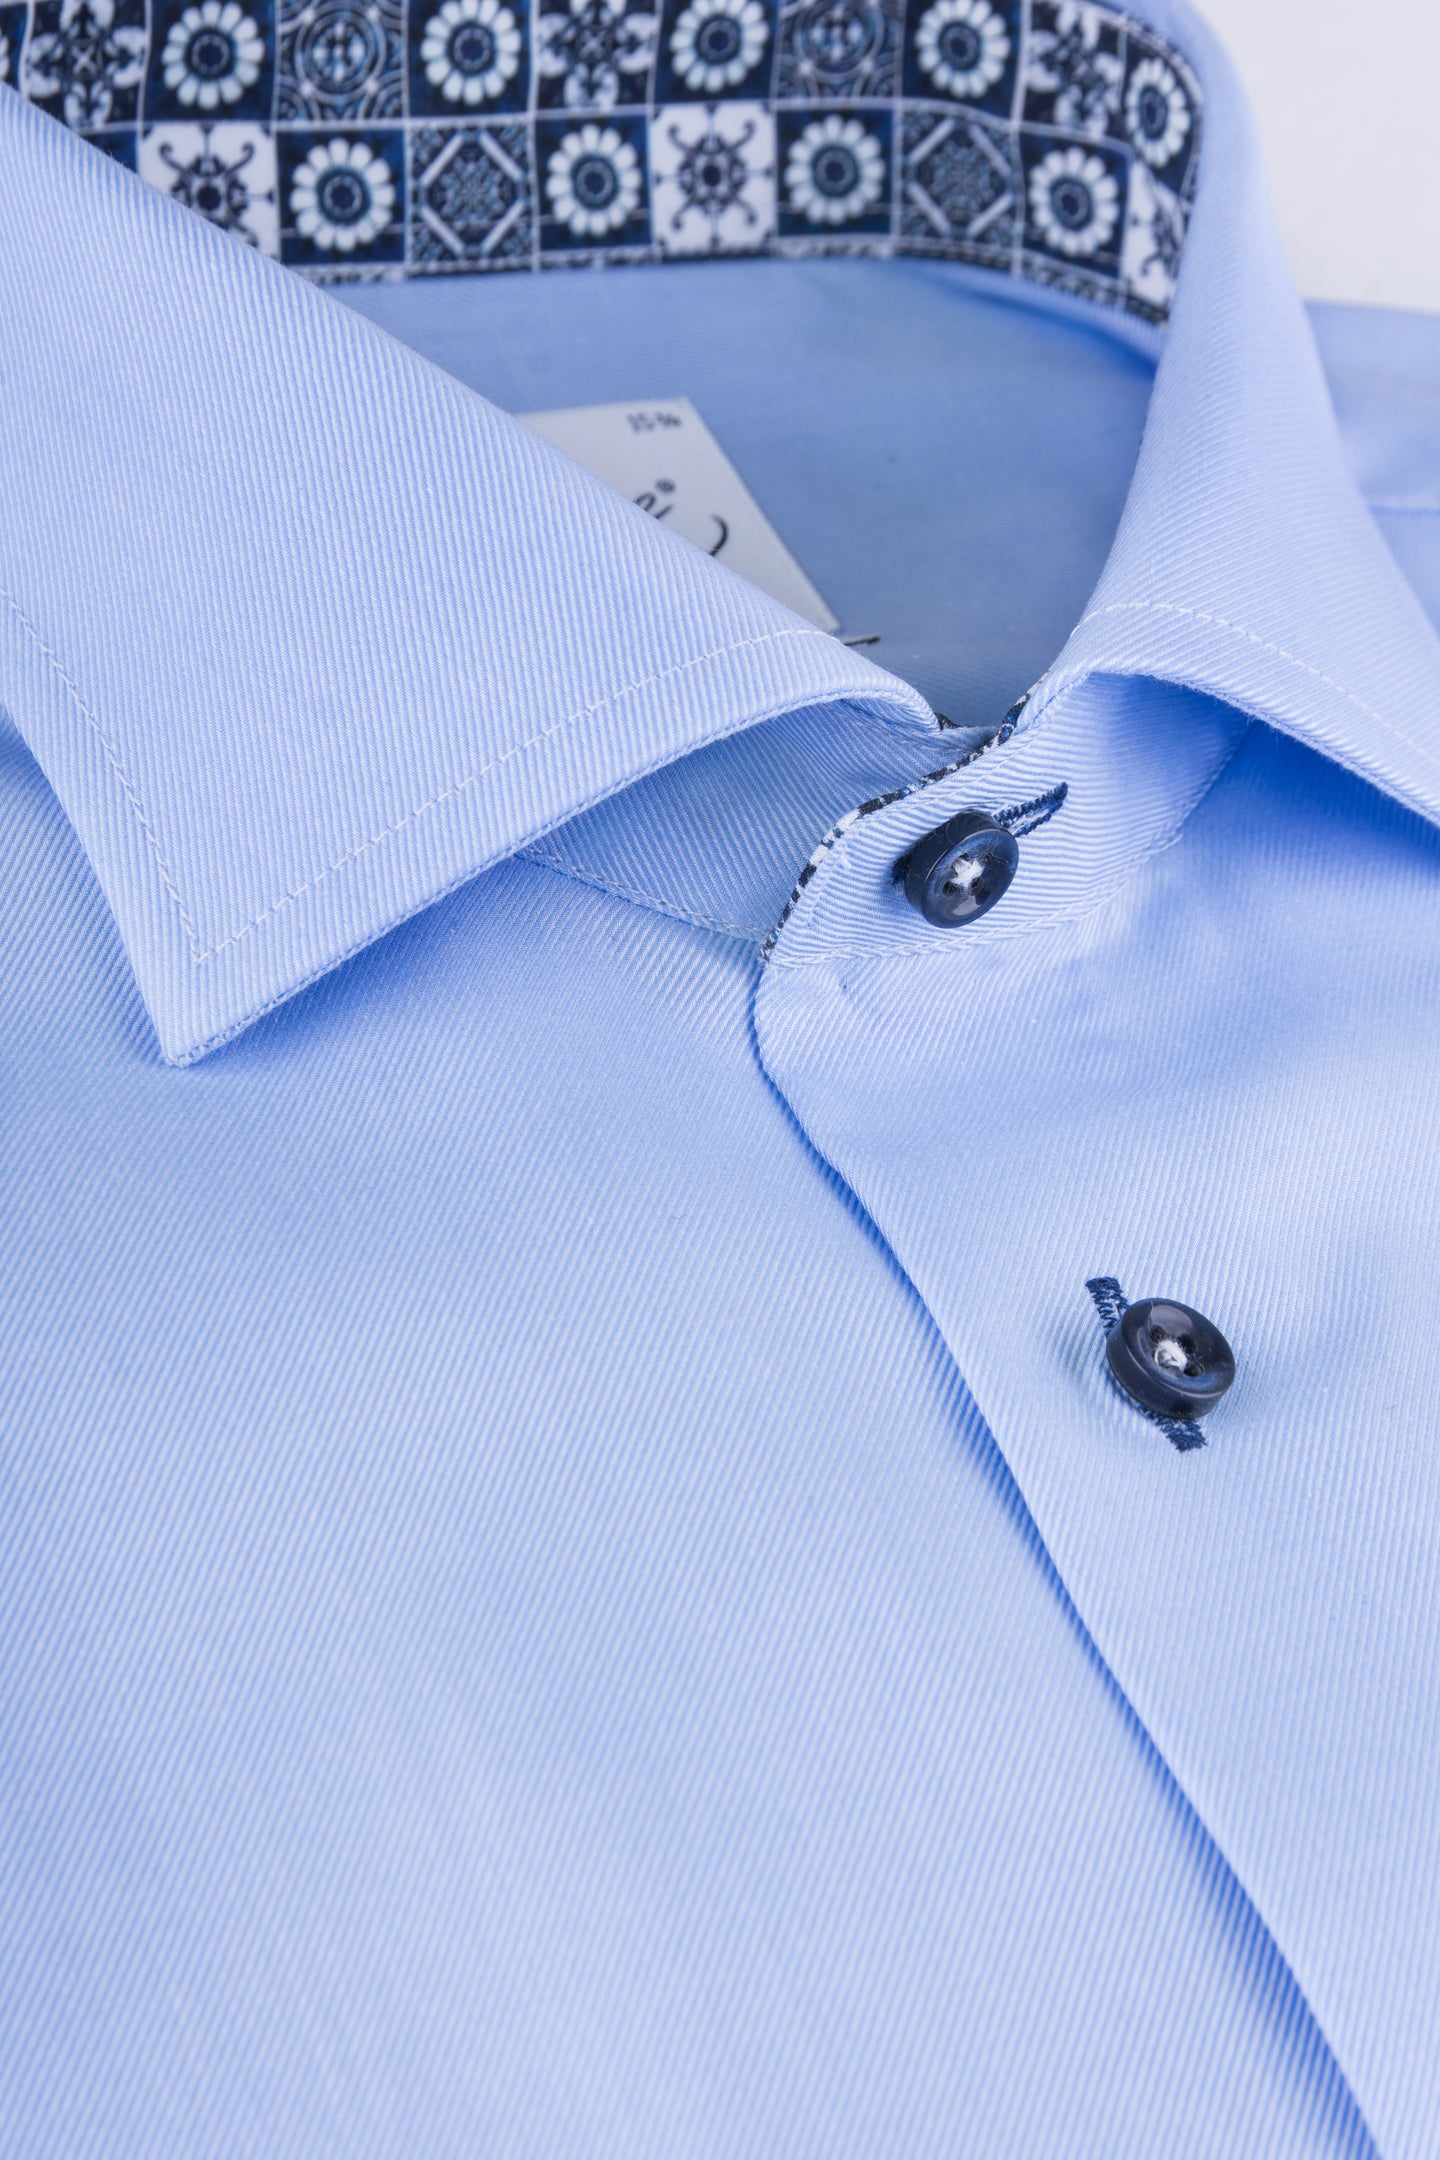 Lightblue regular fit shirt with navy contrast details